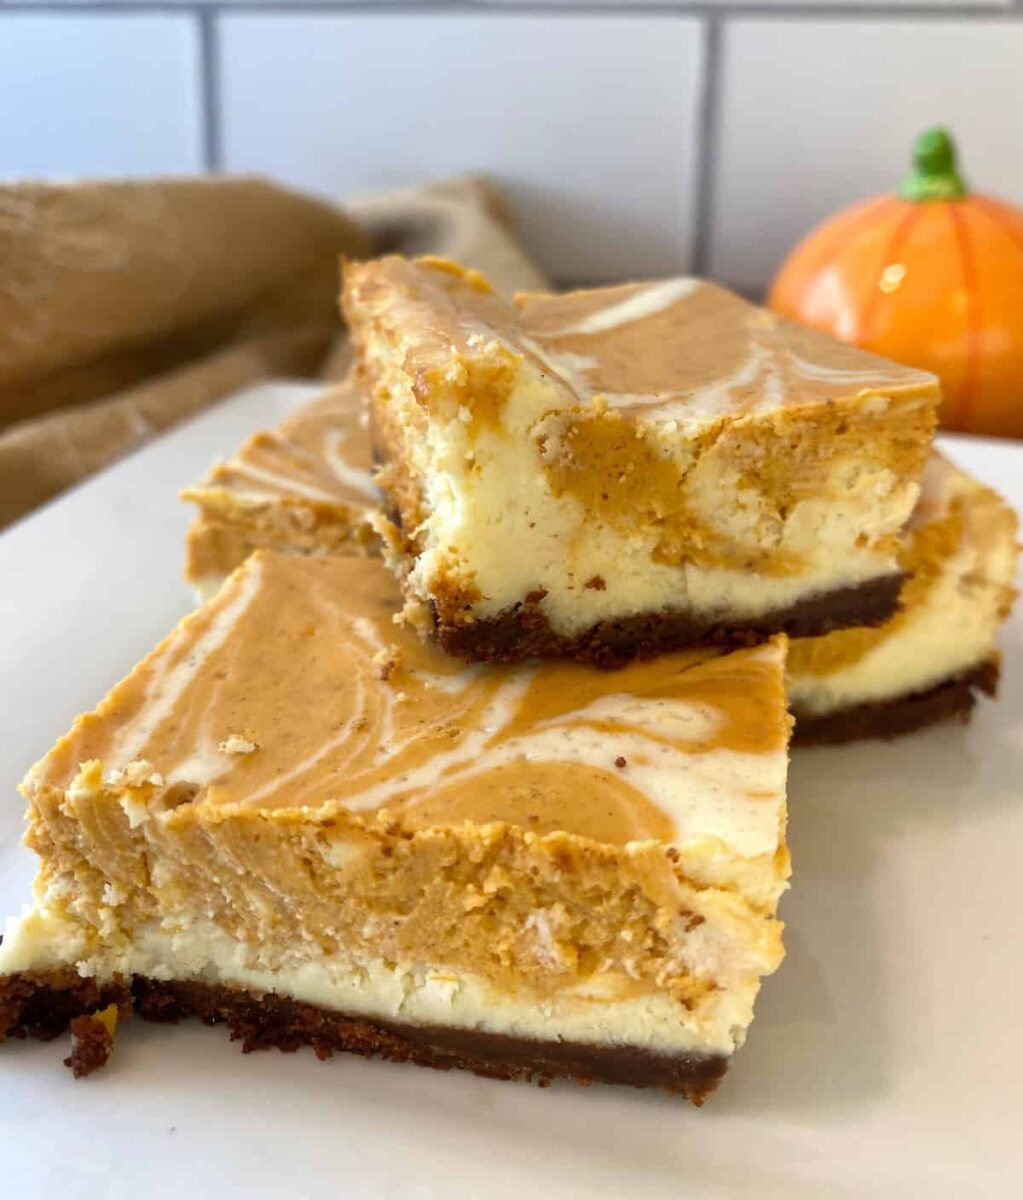 Three baked cheesecake bars stacked on a plate.